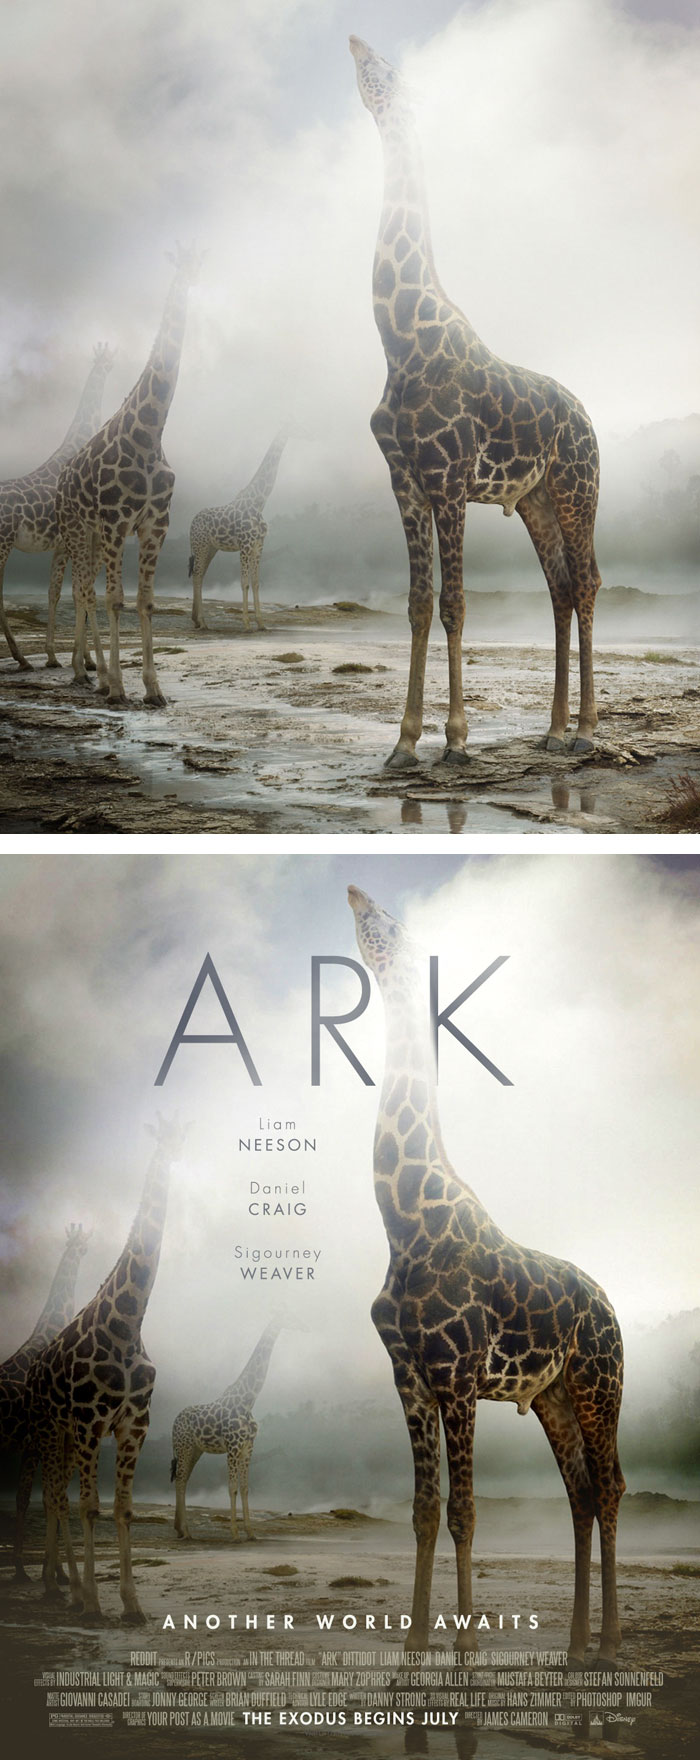 random-photos-turned-into-movie-posters-120__700